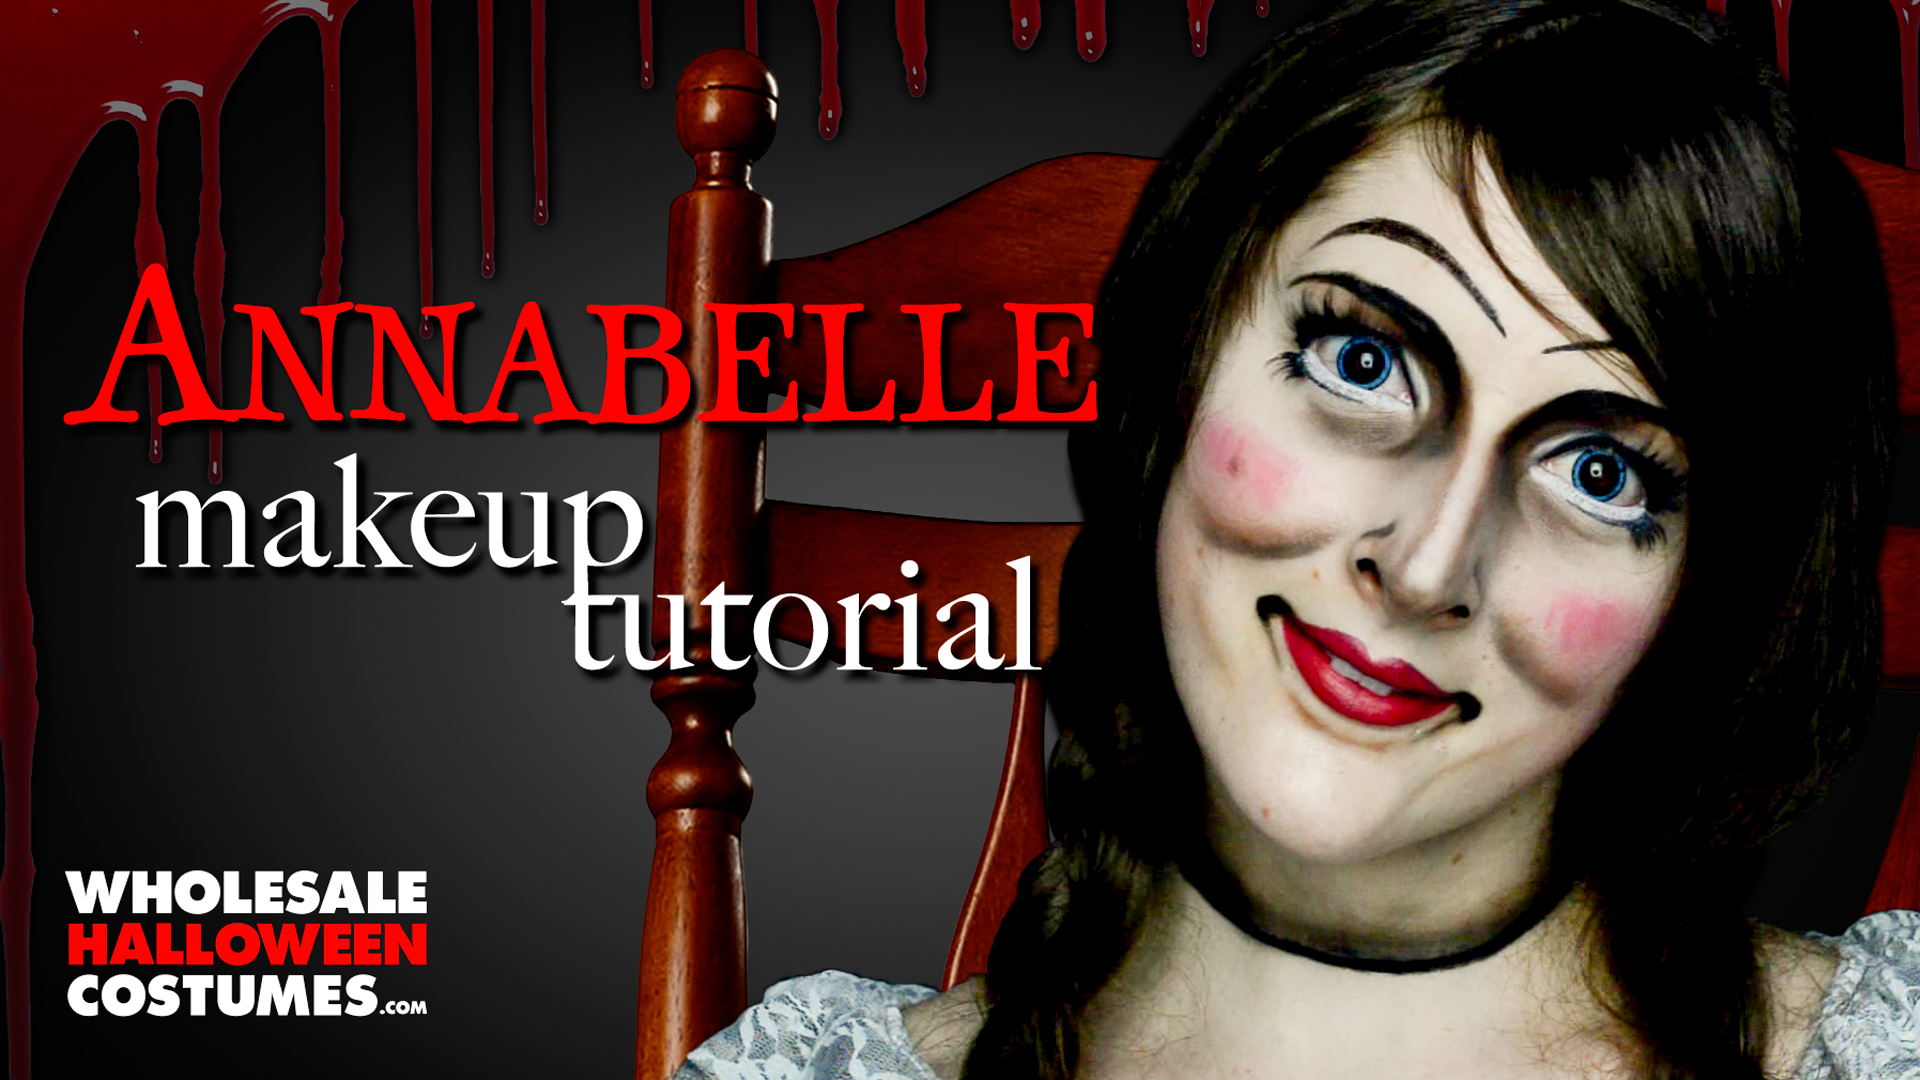 Annabelle Makeup Tutorial